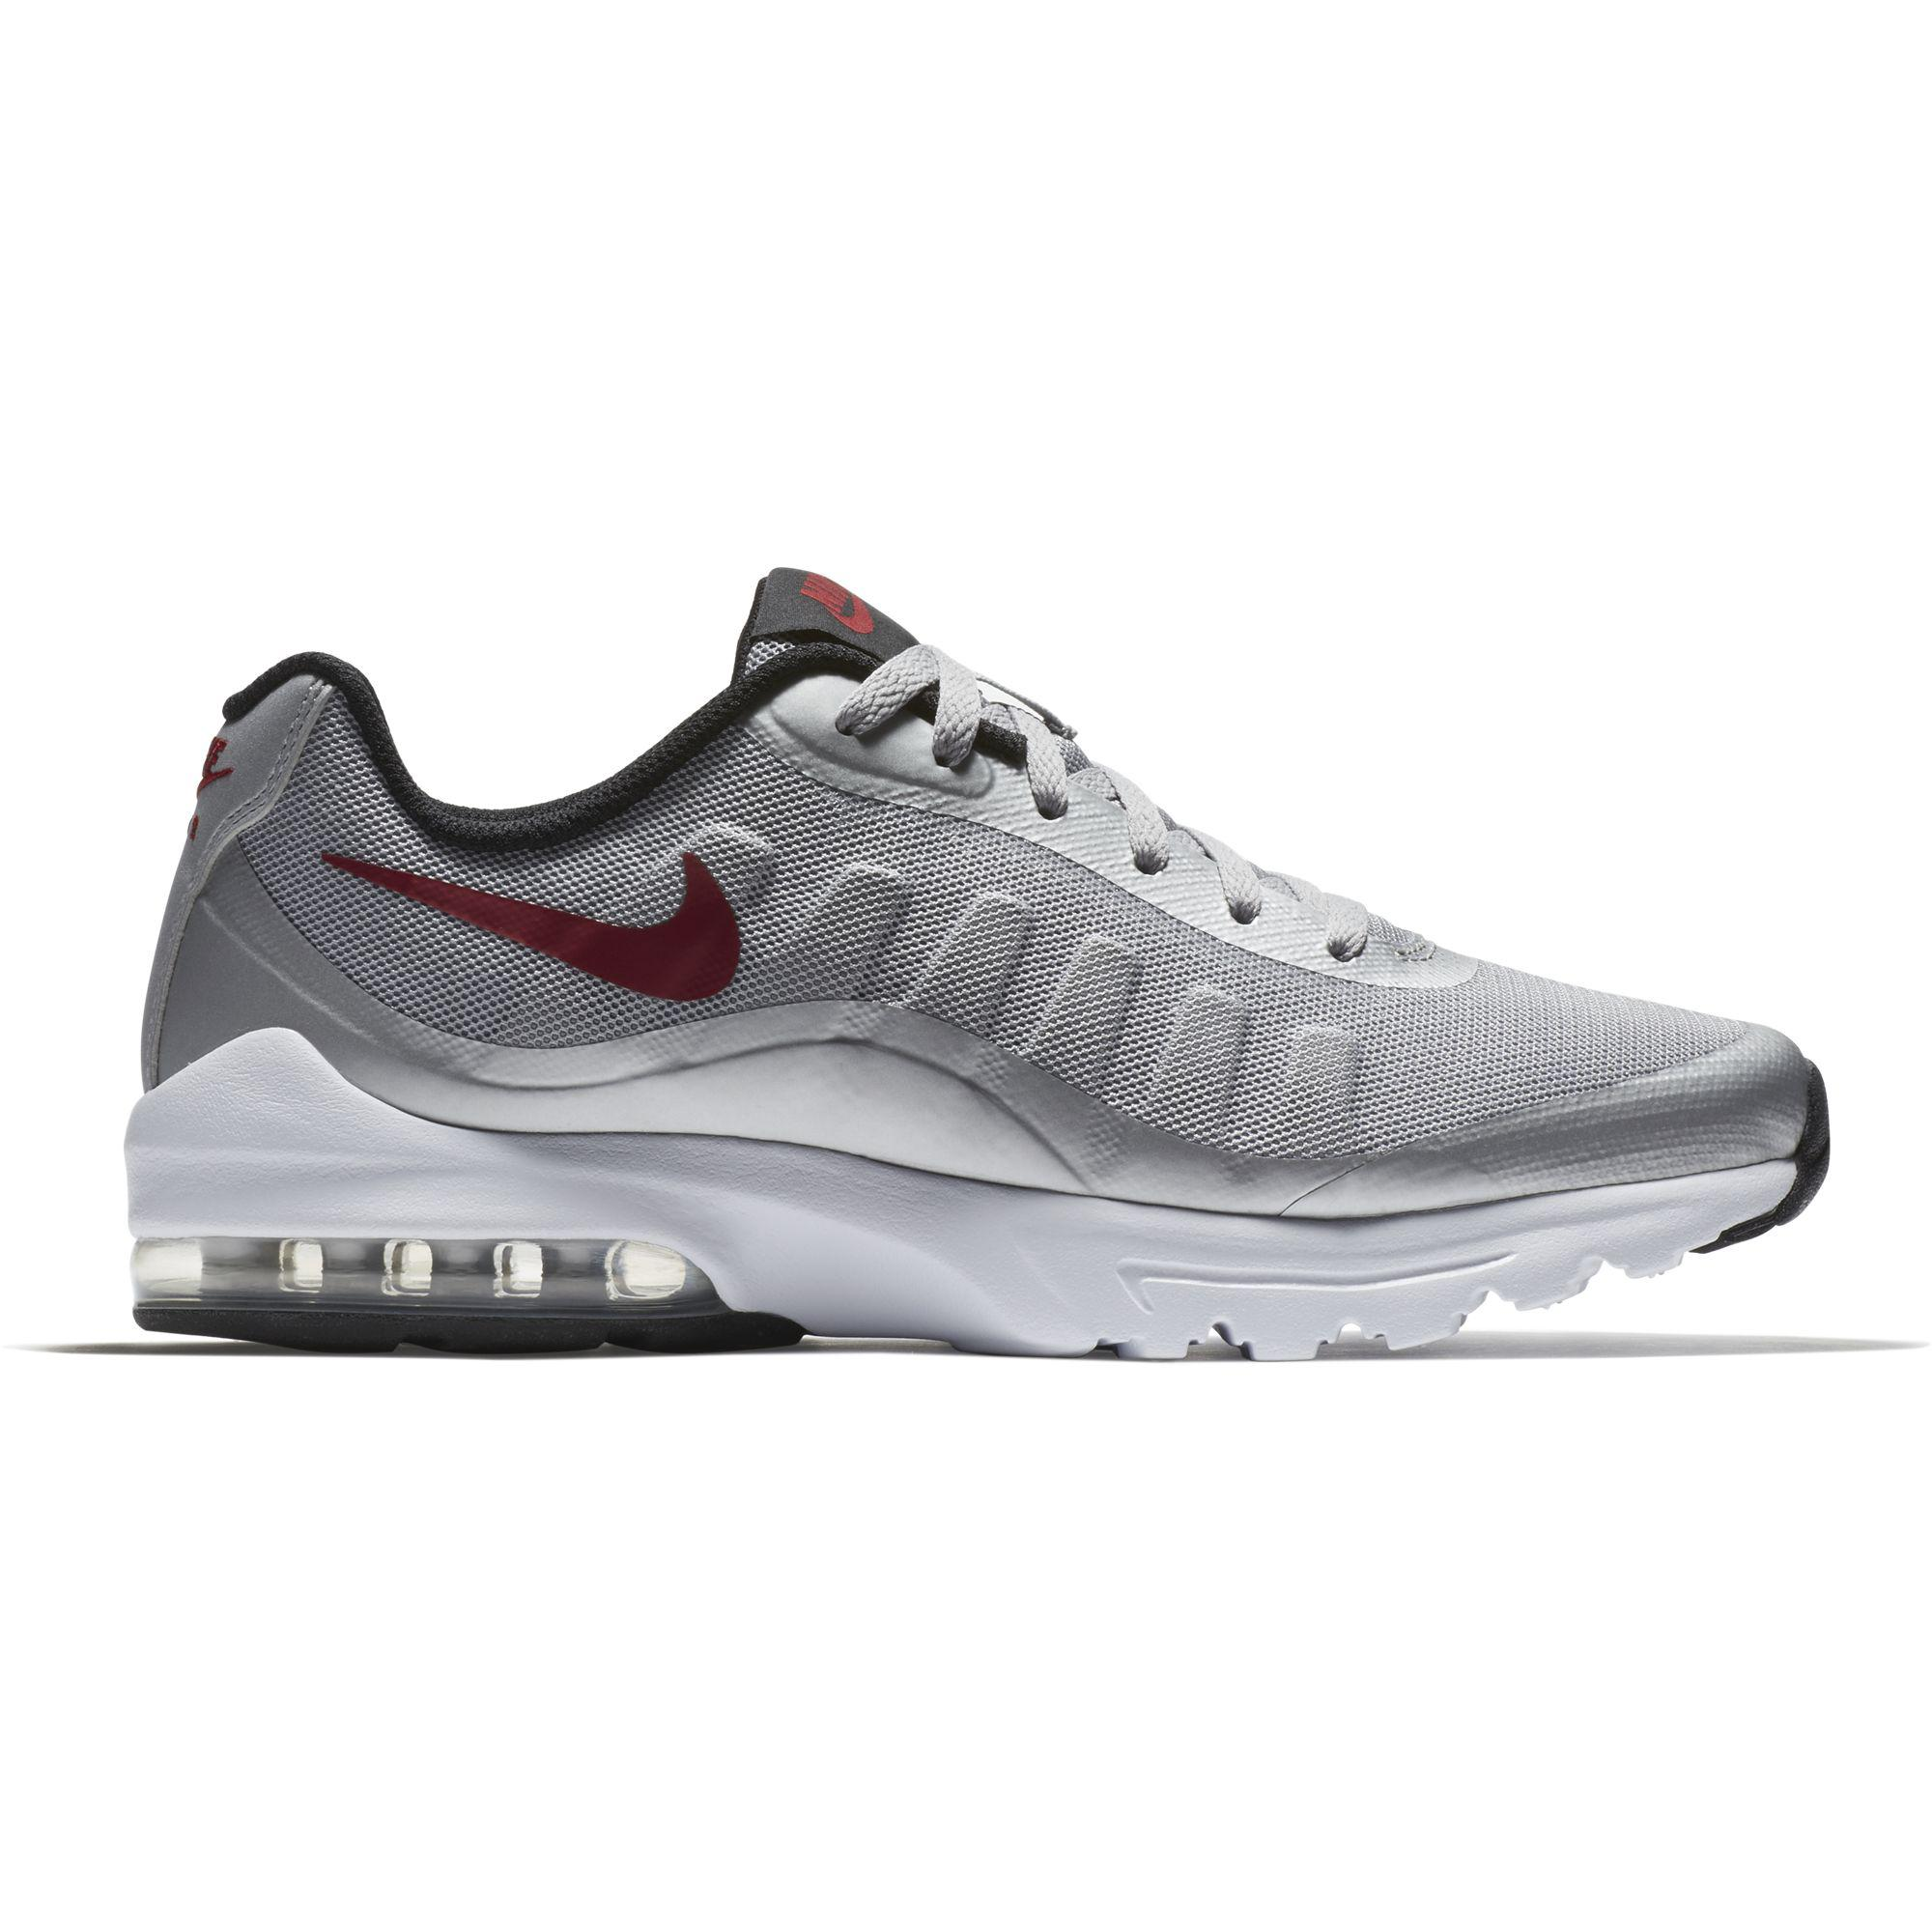 quality design 1d934 6a786 Nike Mens Air Max Invigor Running Shoes - GreyRedBlack - Tennisnuts.com